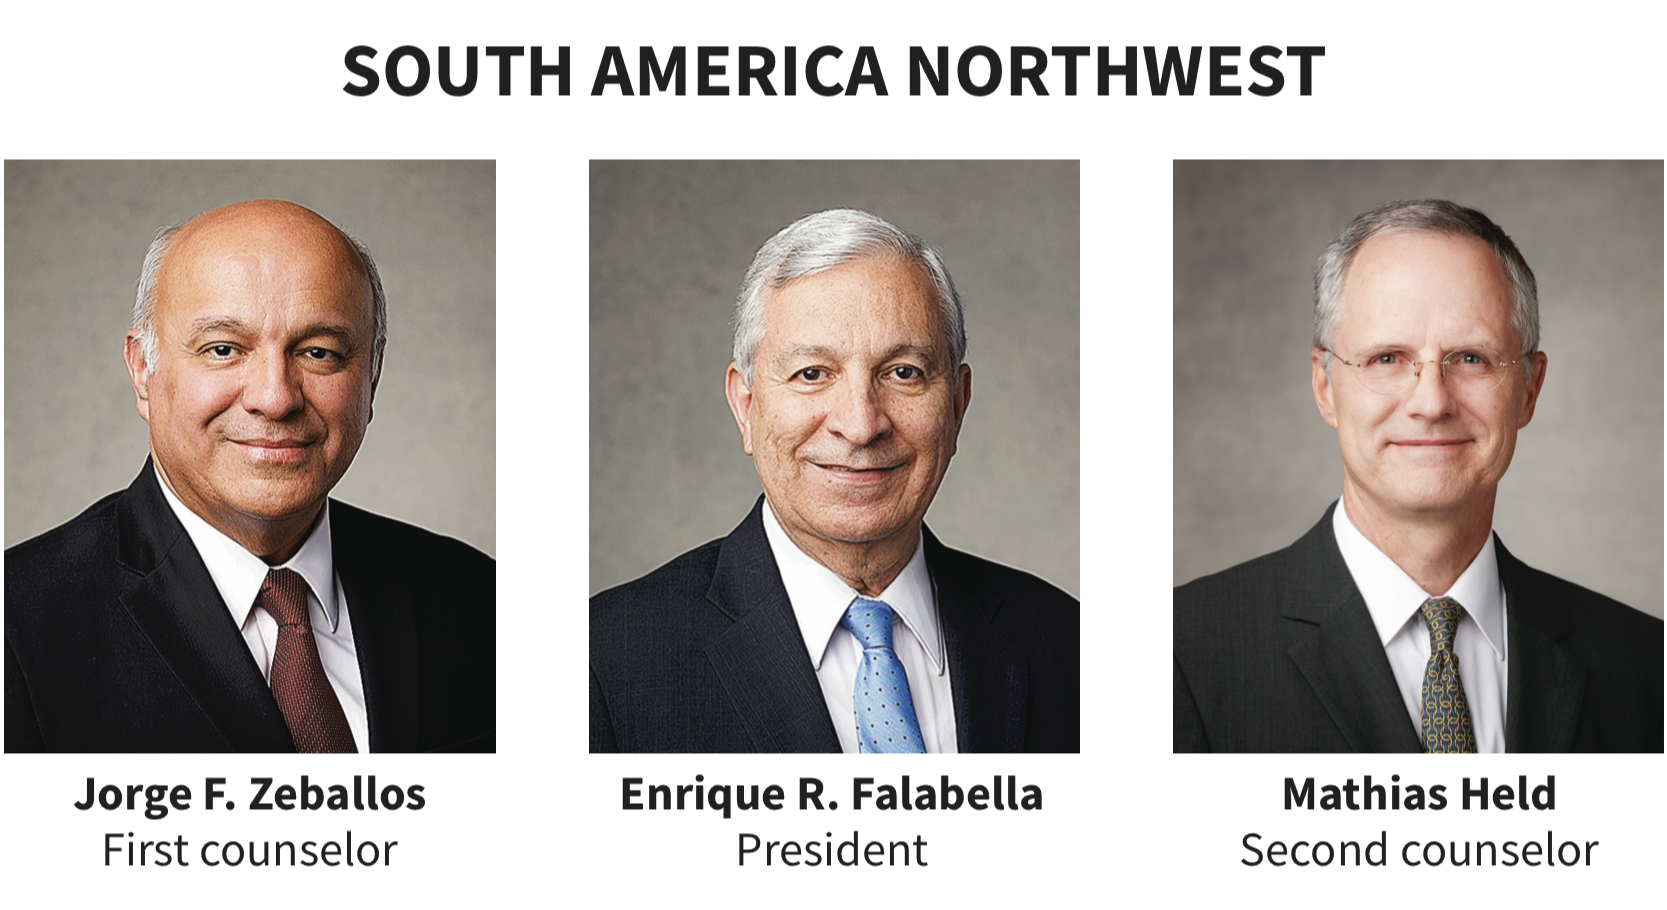 South America Northwest area presidency